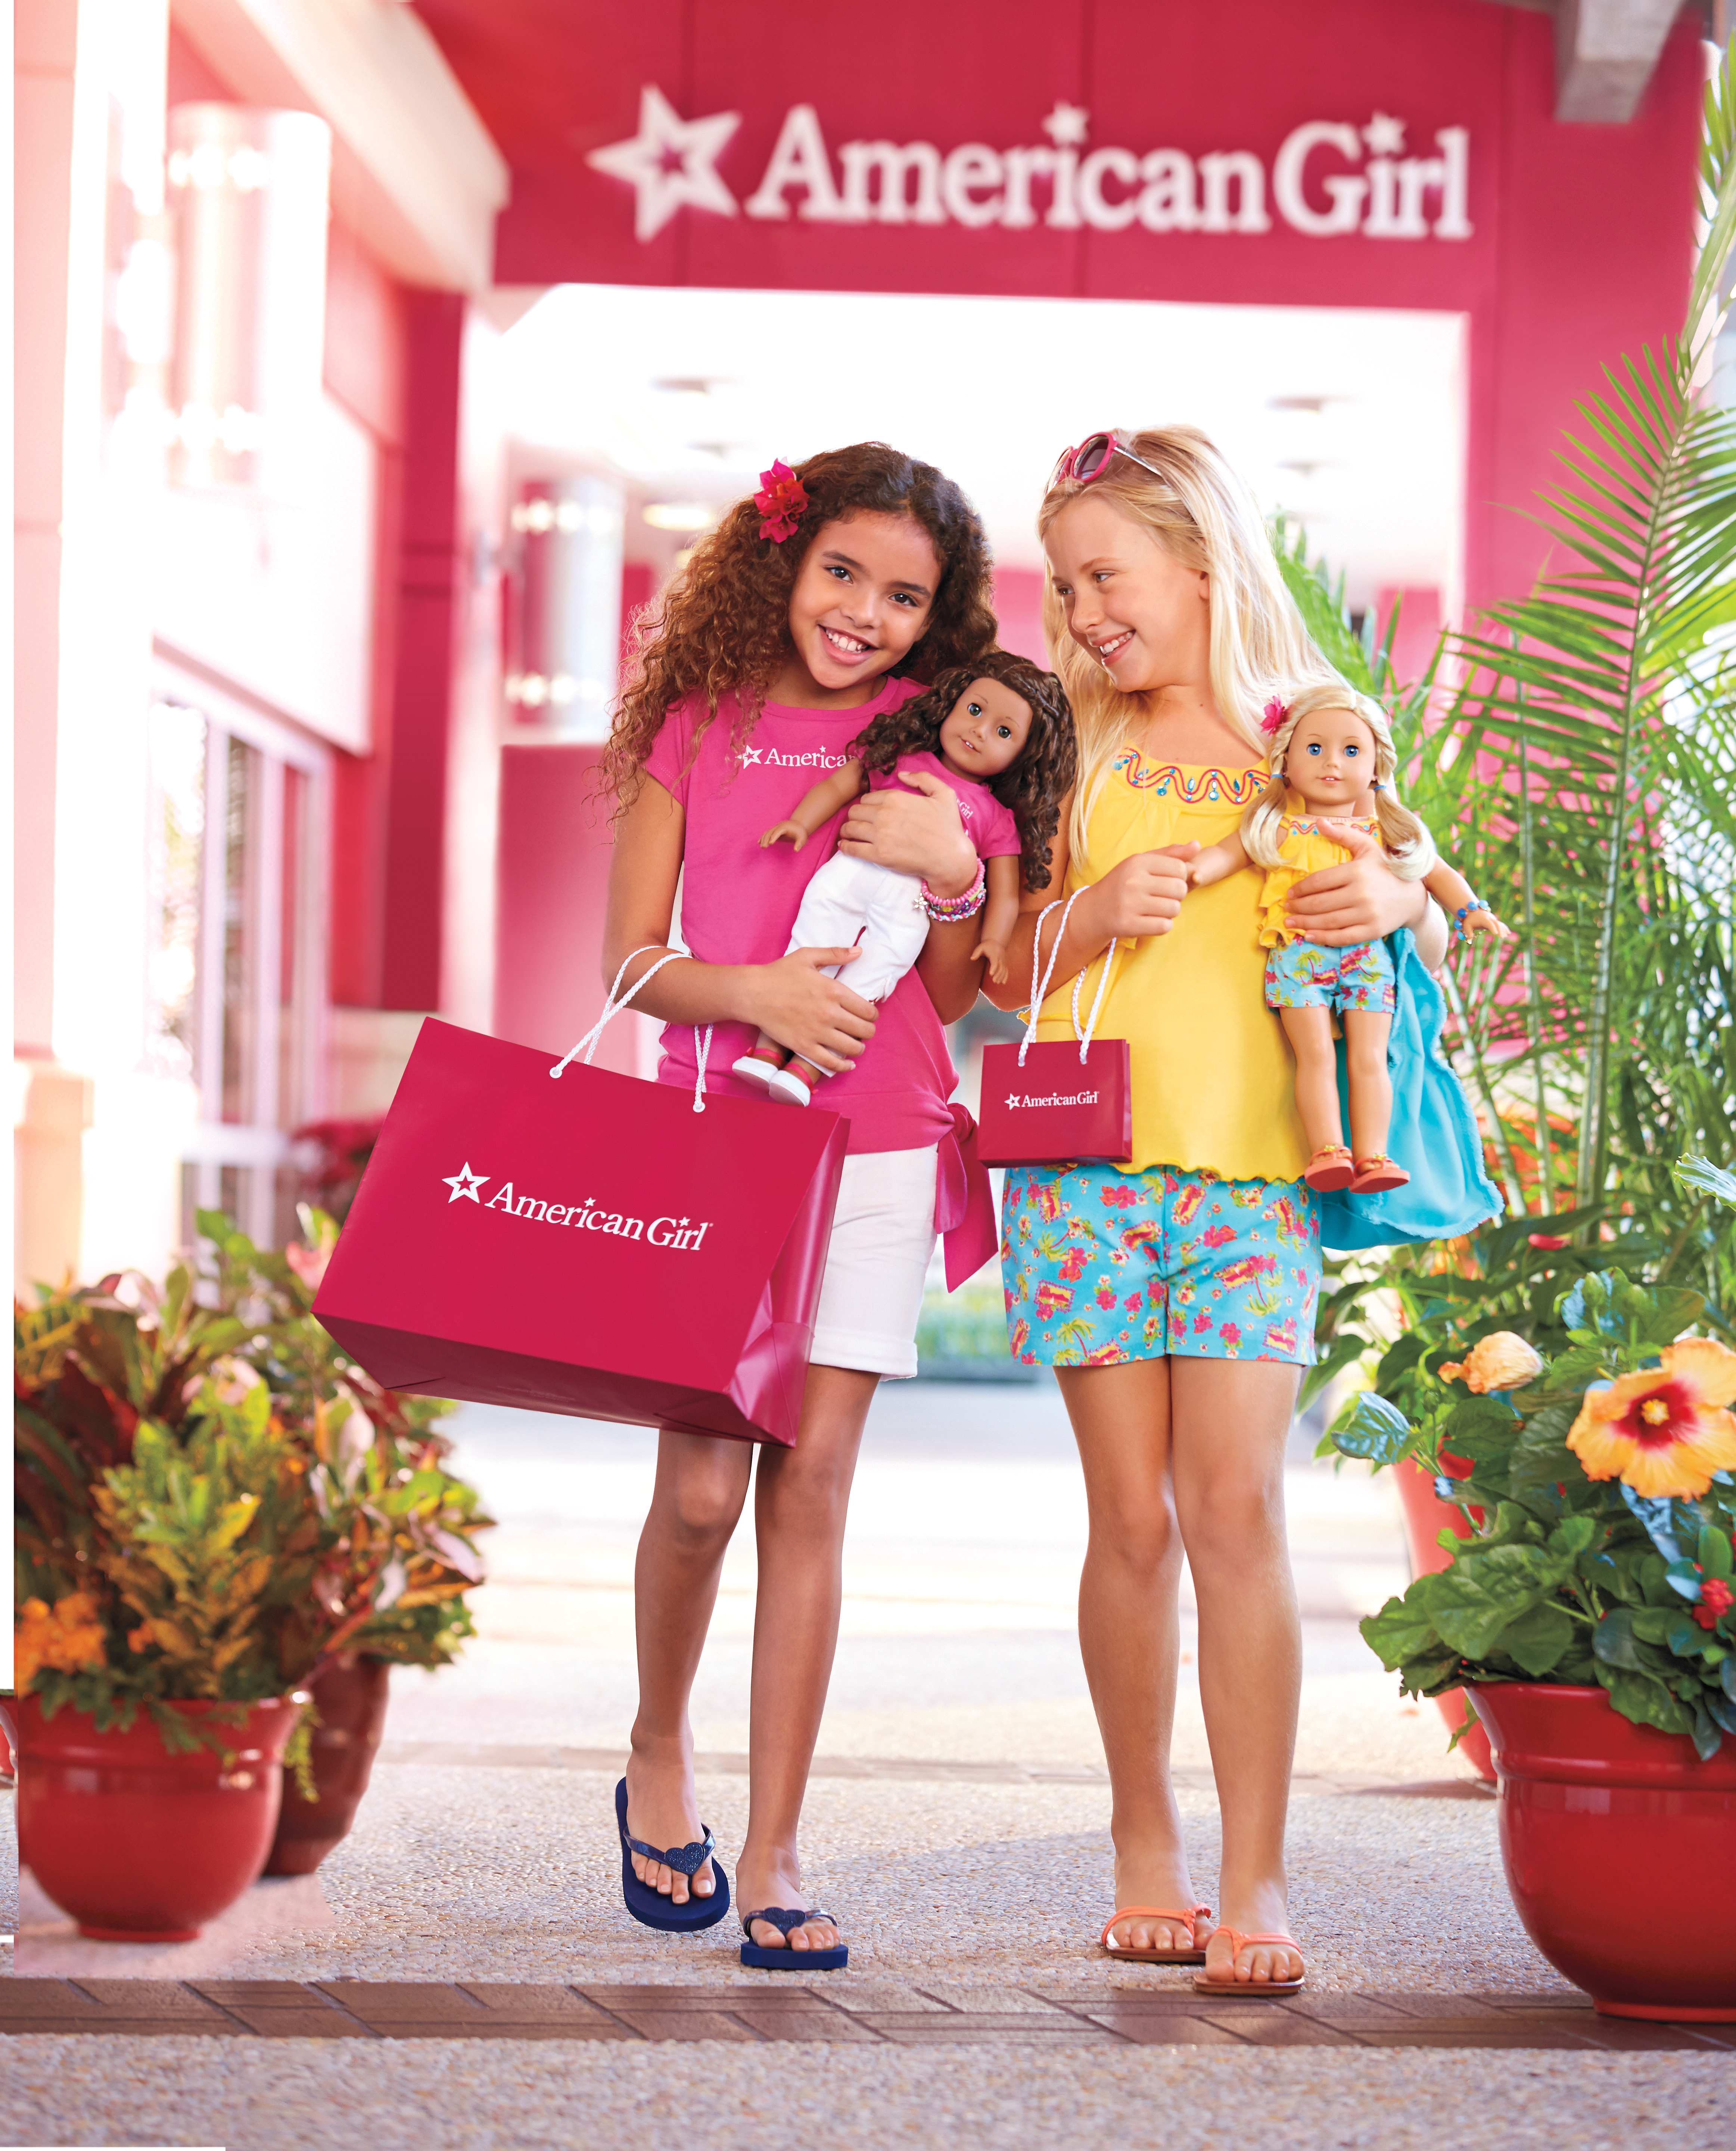 Girls enjoying a visit to an America Girl store. (Photo: Business Wire)